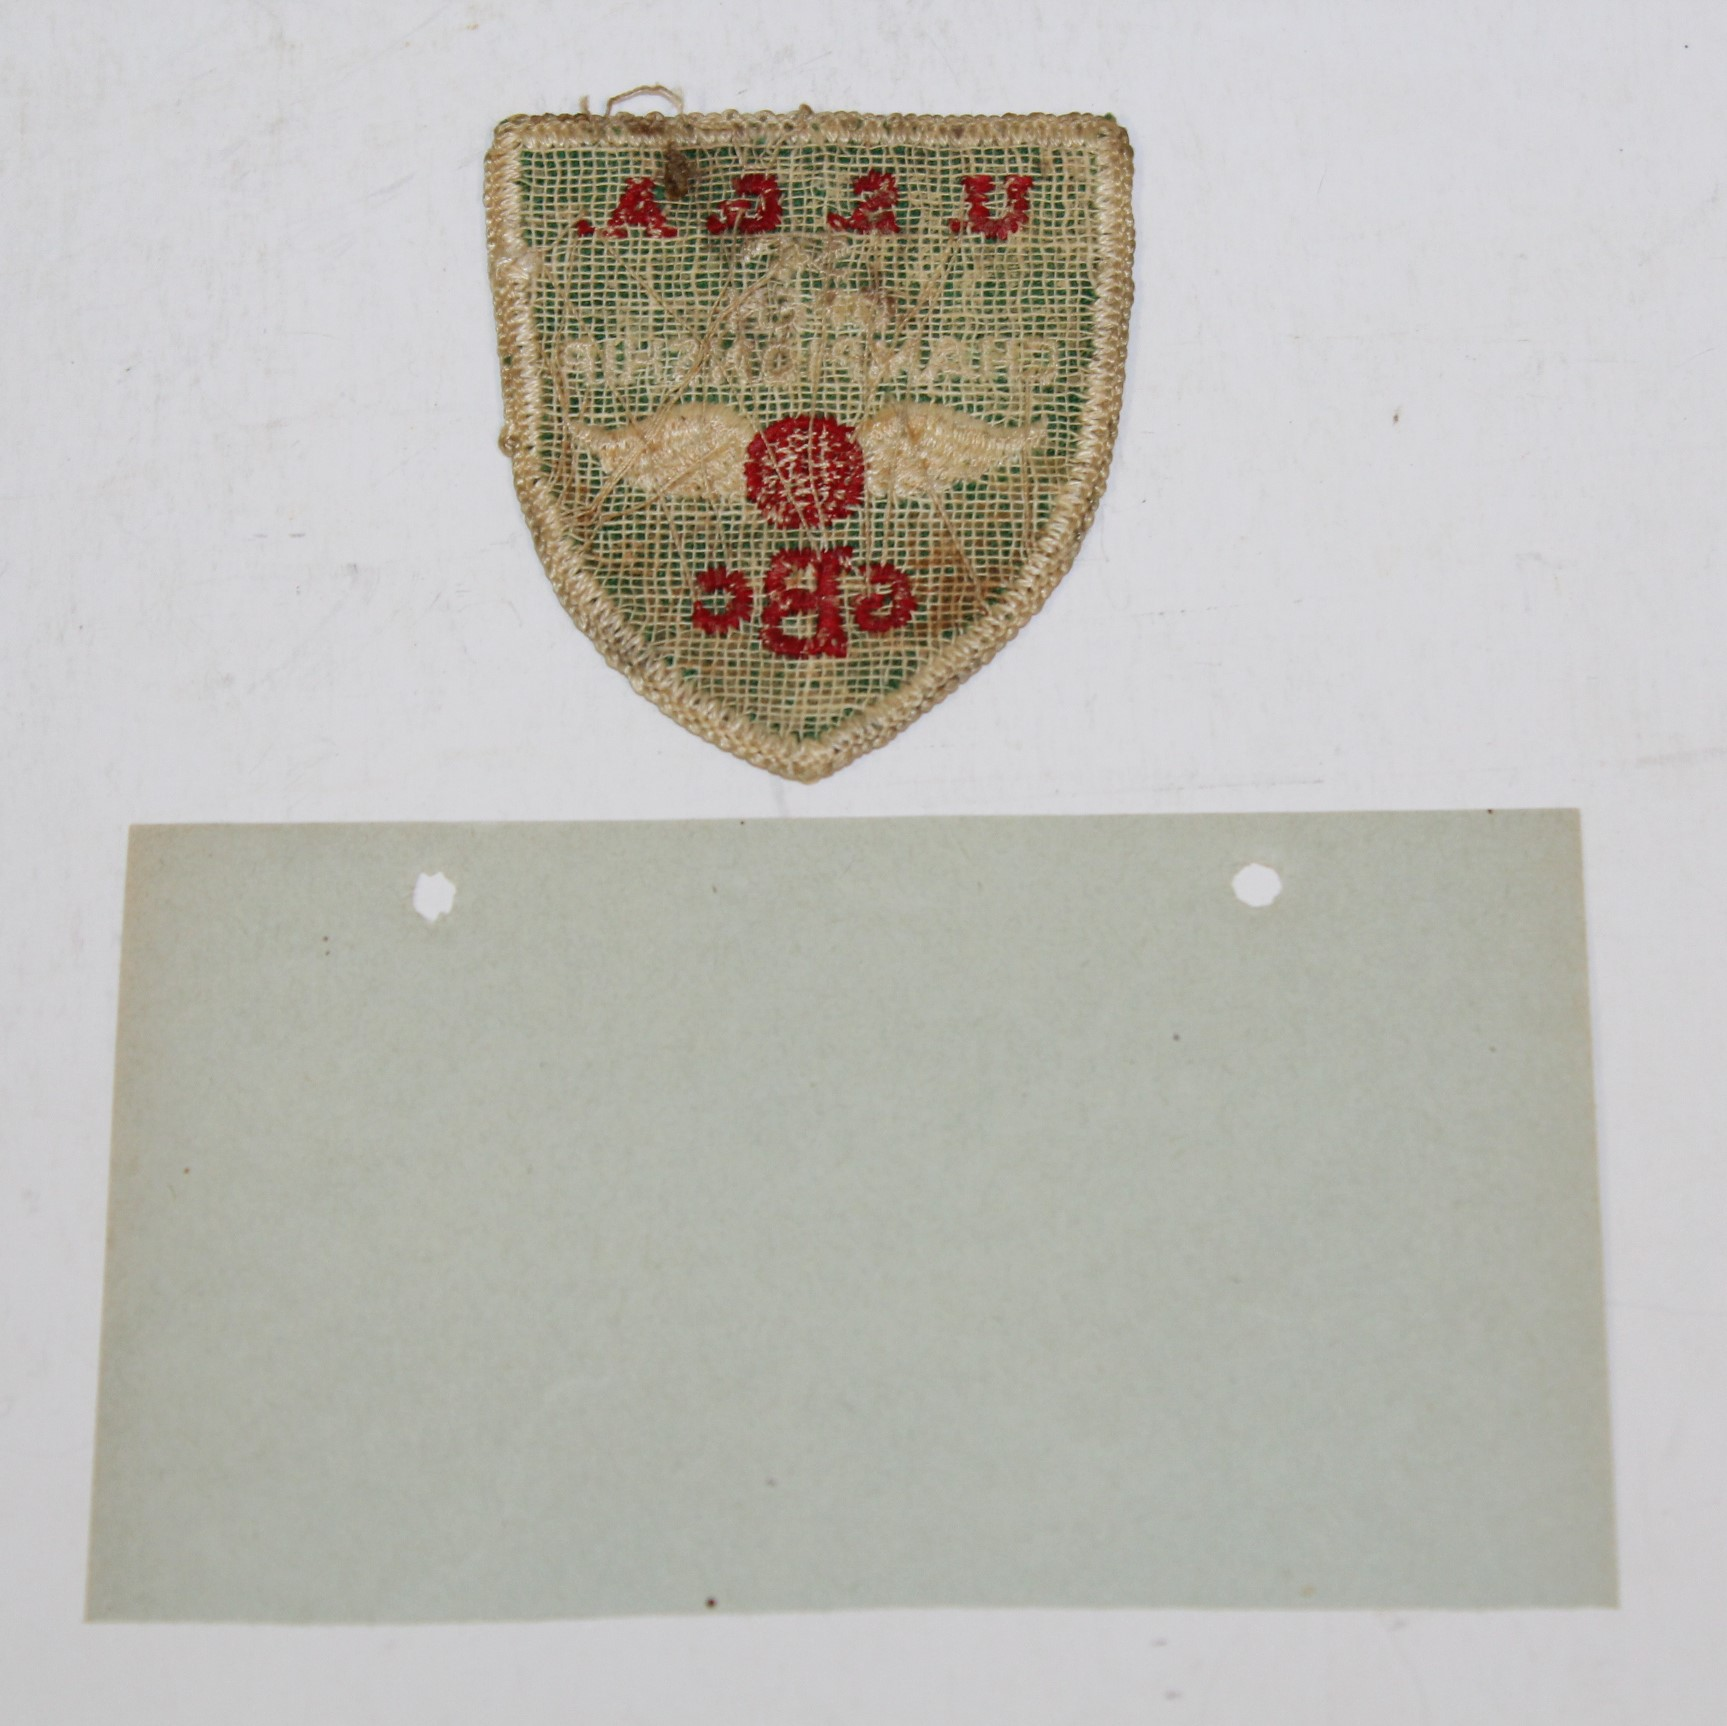 lot detail - 1954 us open championship items